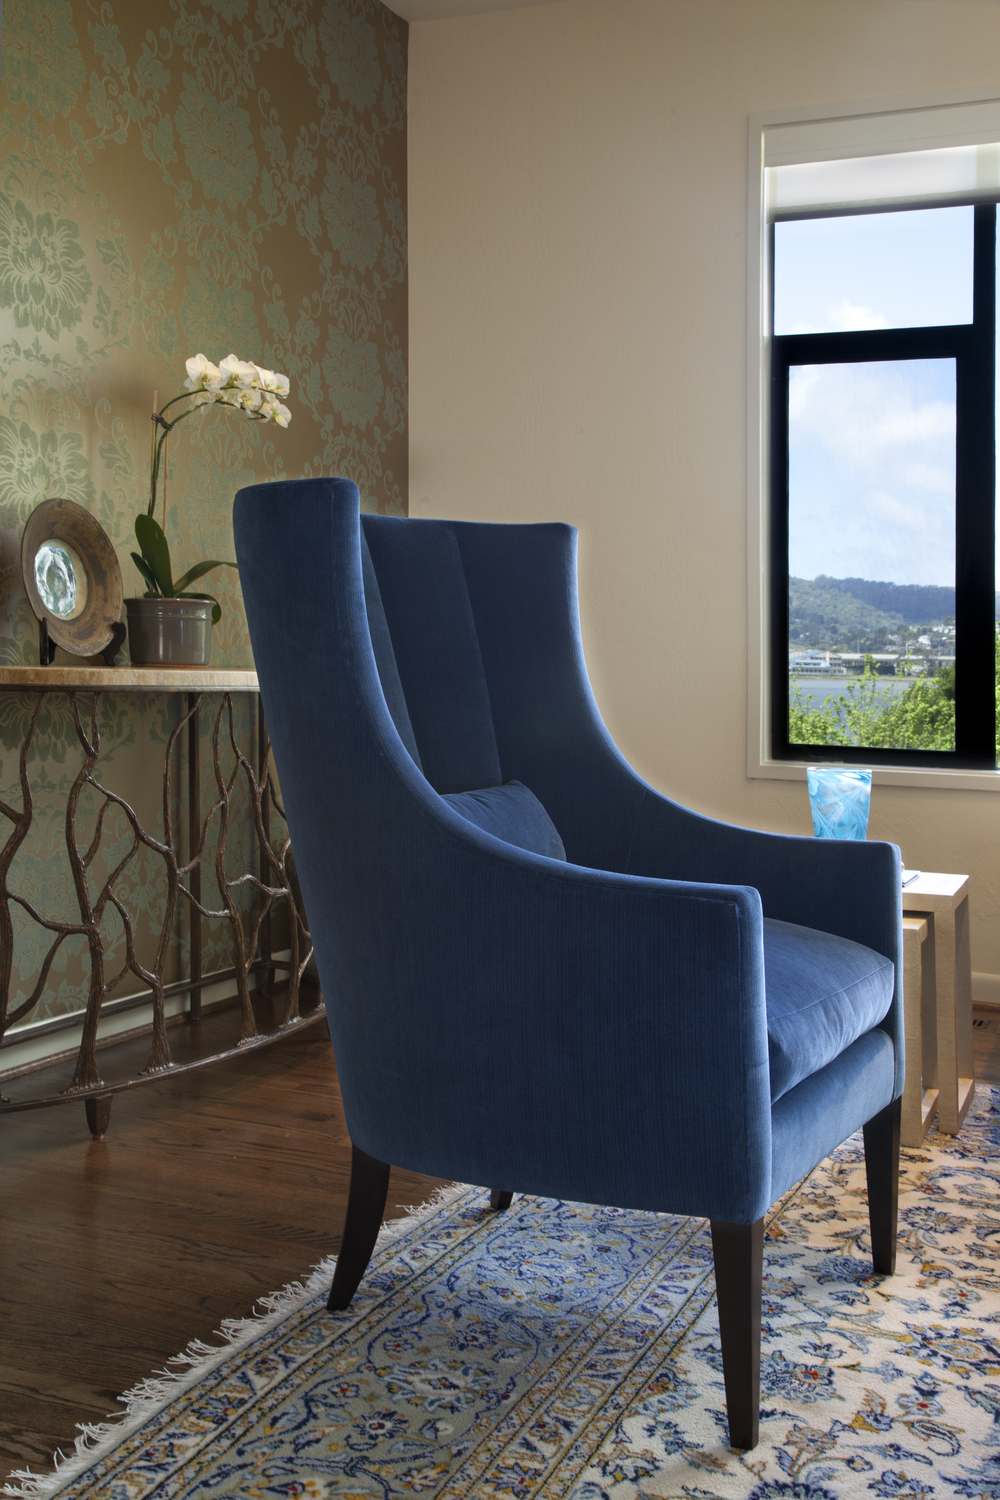 Endora chair and twig console